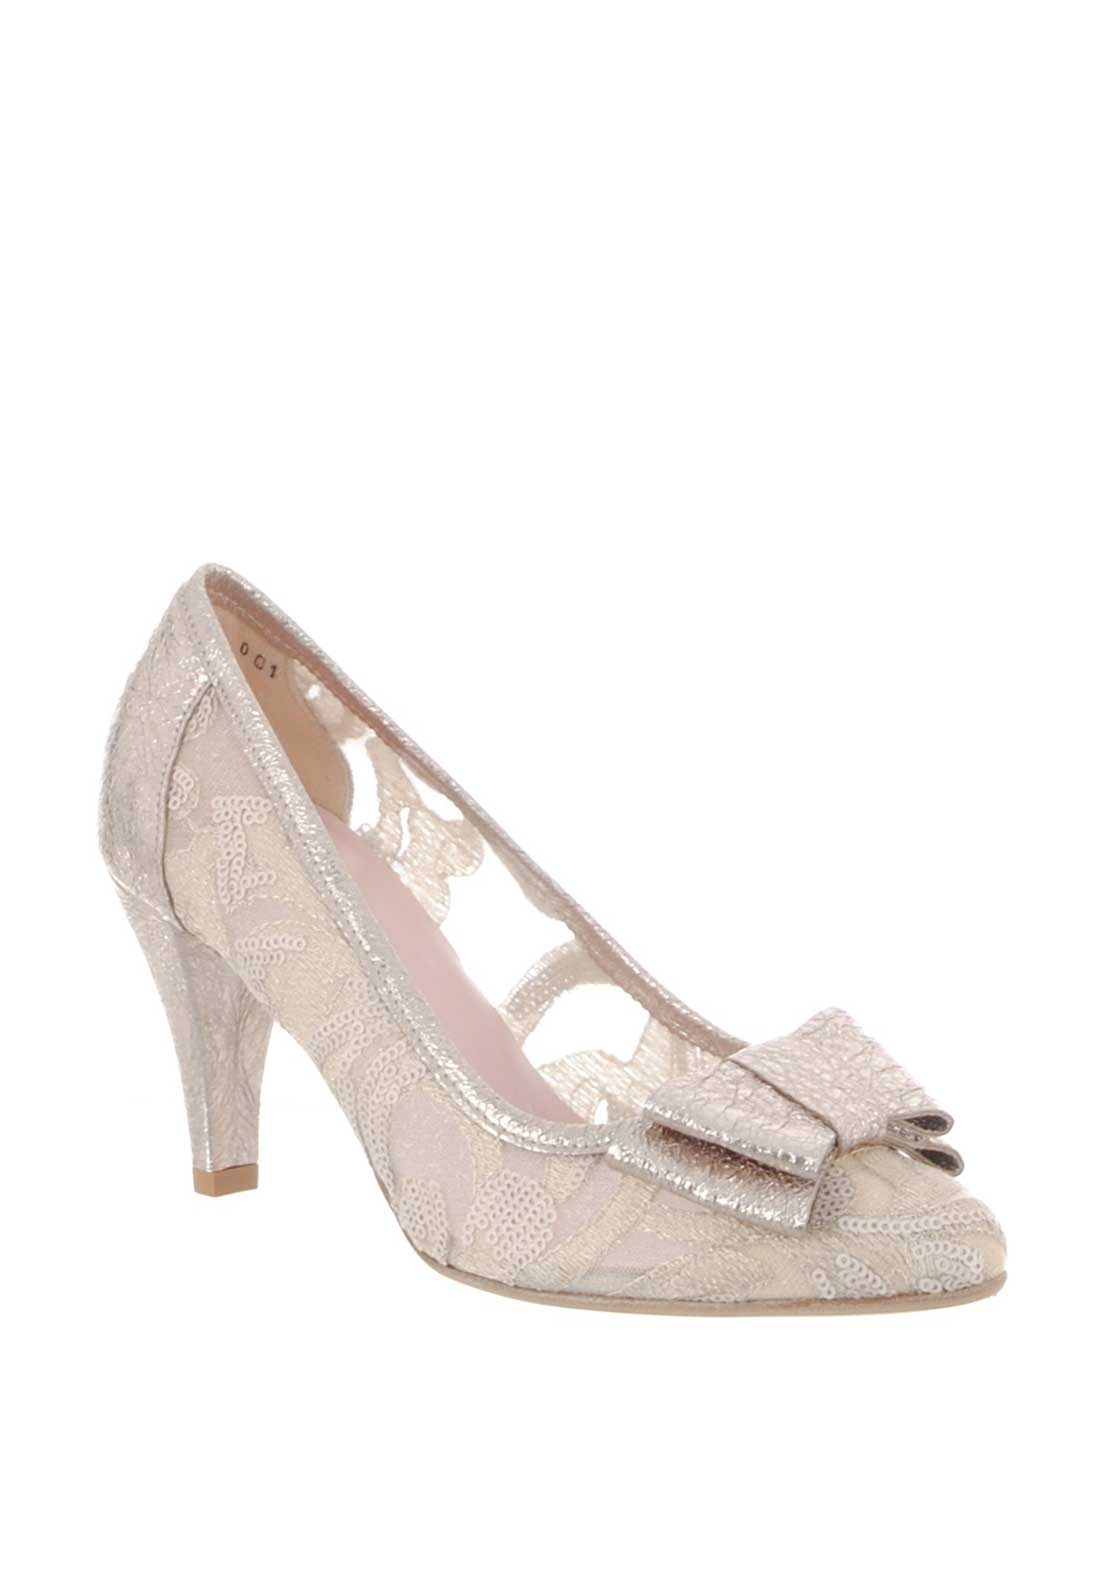 Le Babe Mesh Metallic Heeled Court Shoes, Gold